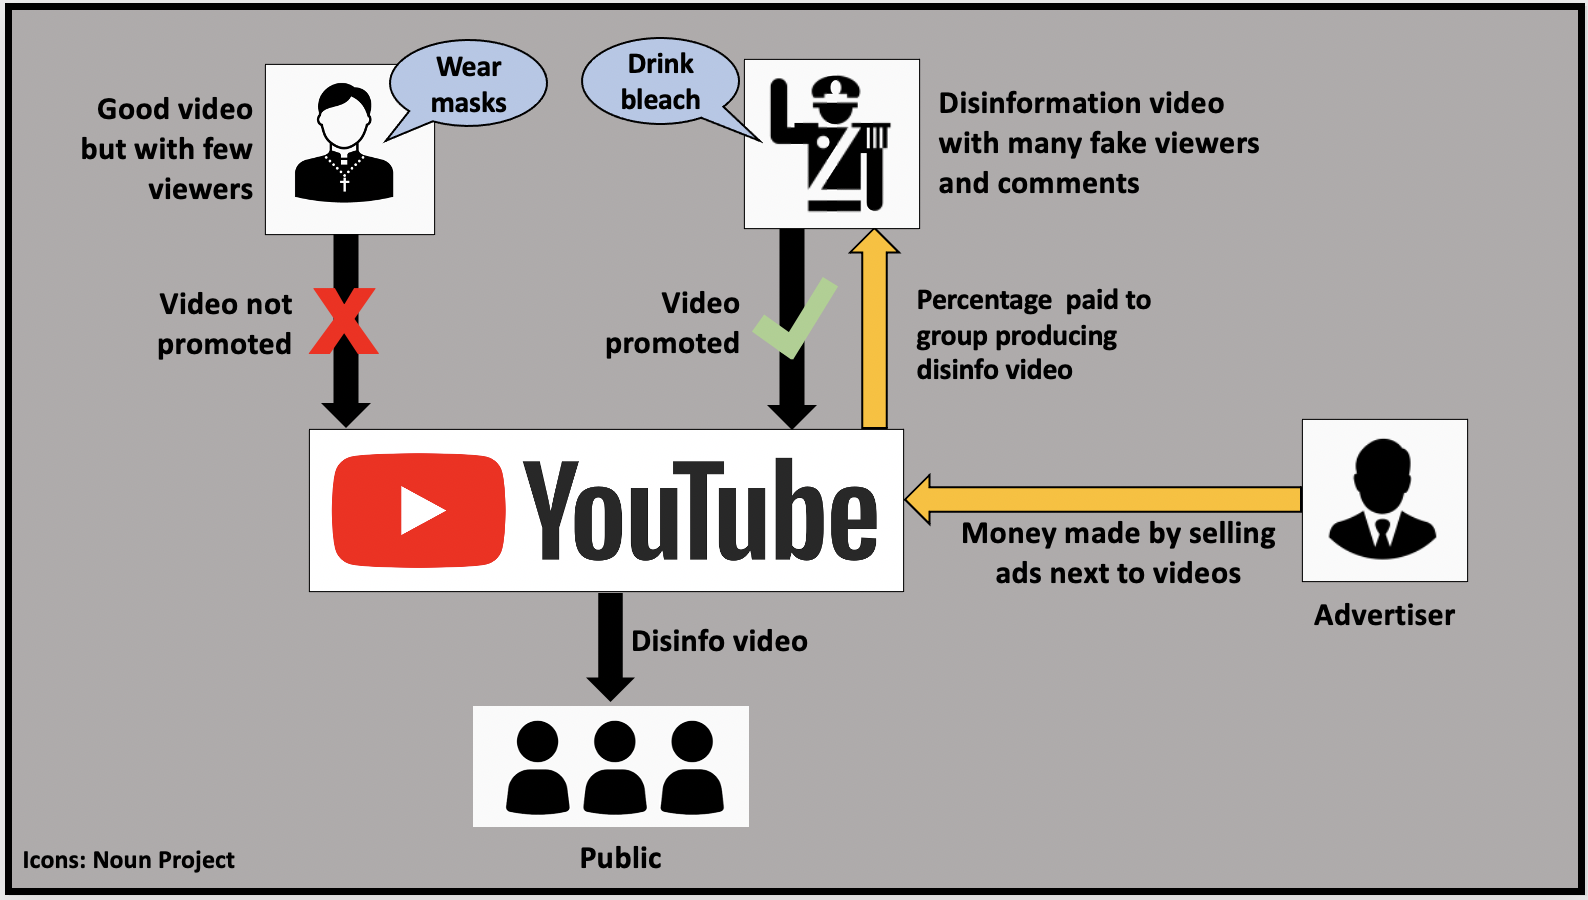 YouTube profits from selling ads next to videos with disinformation